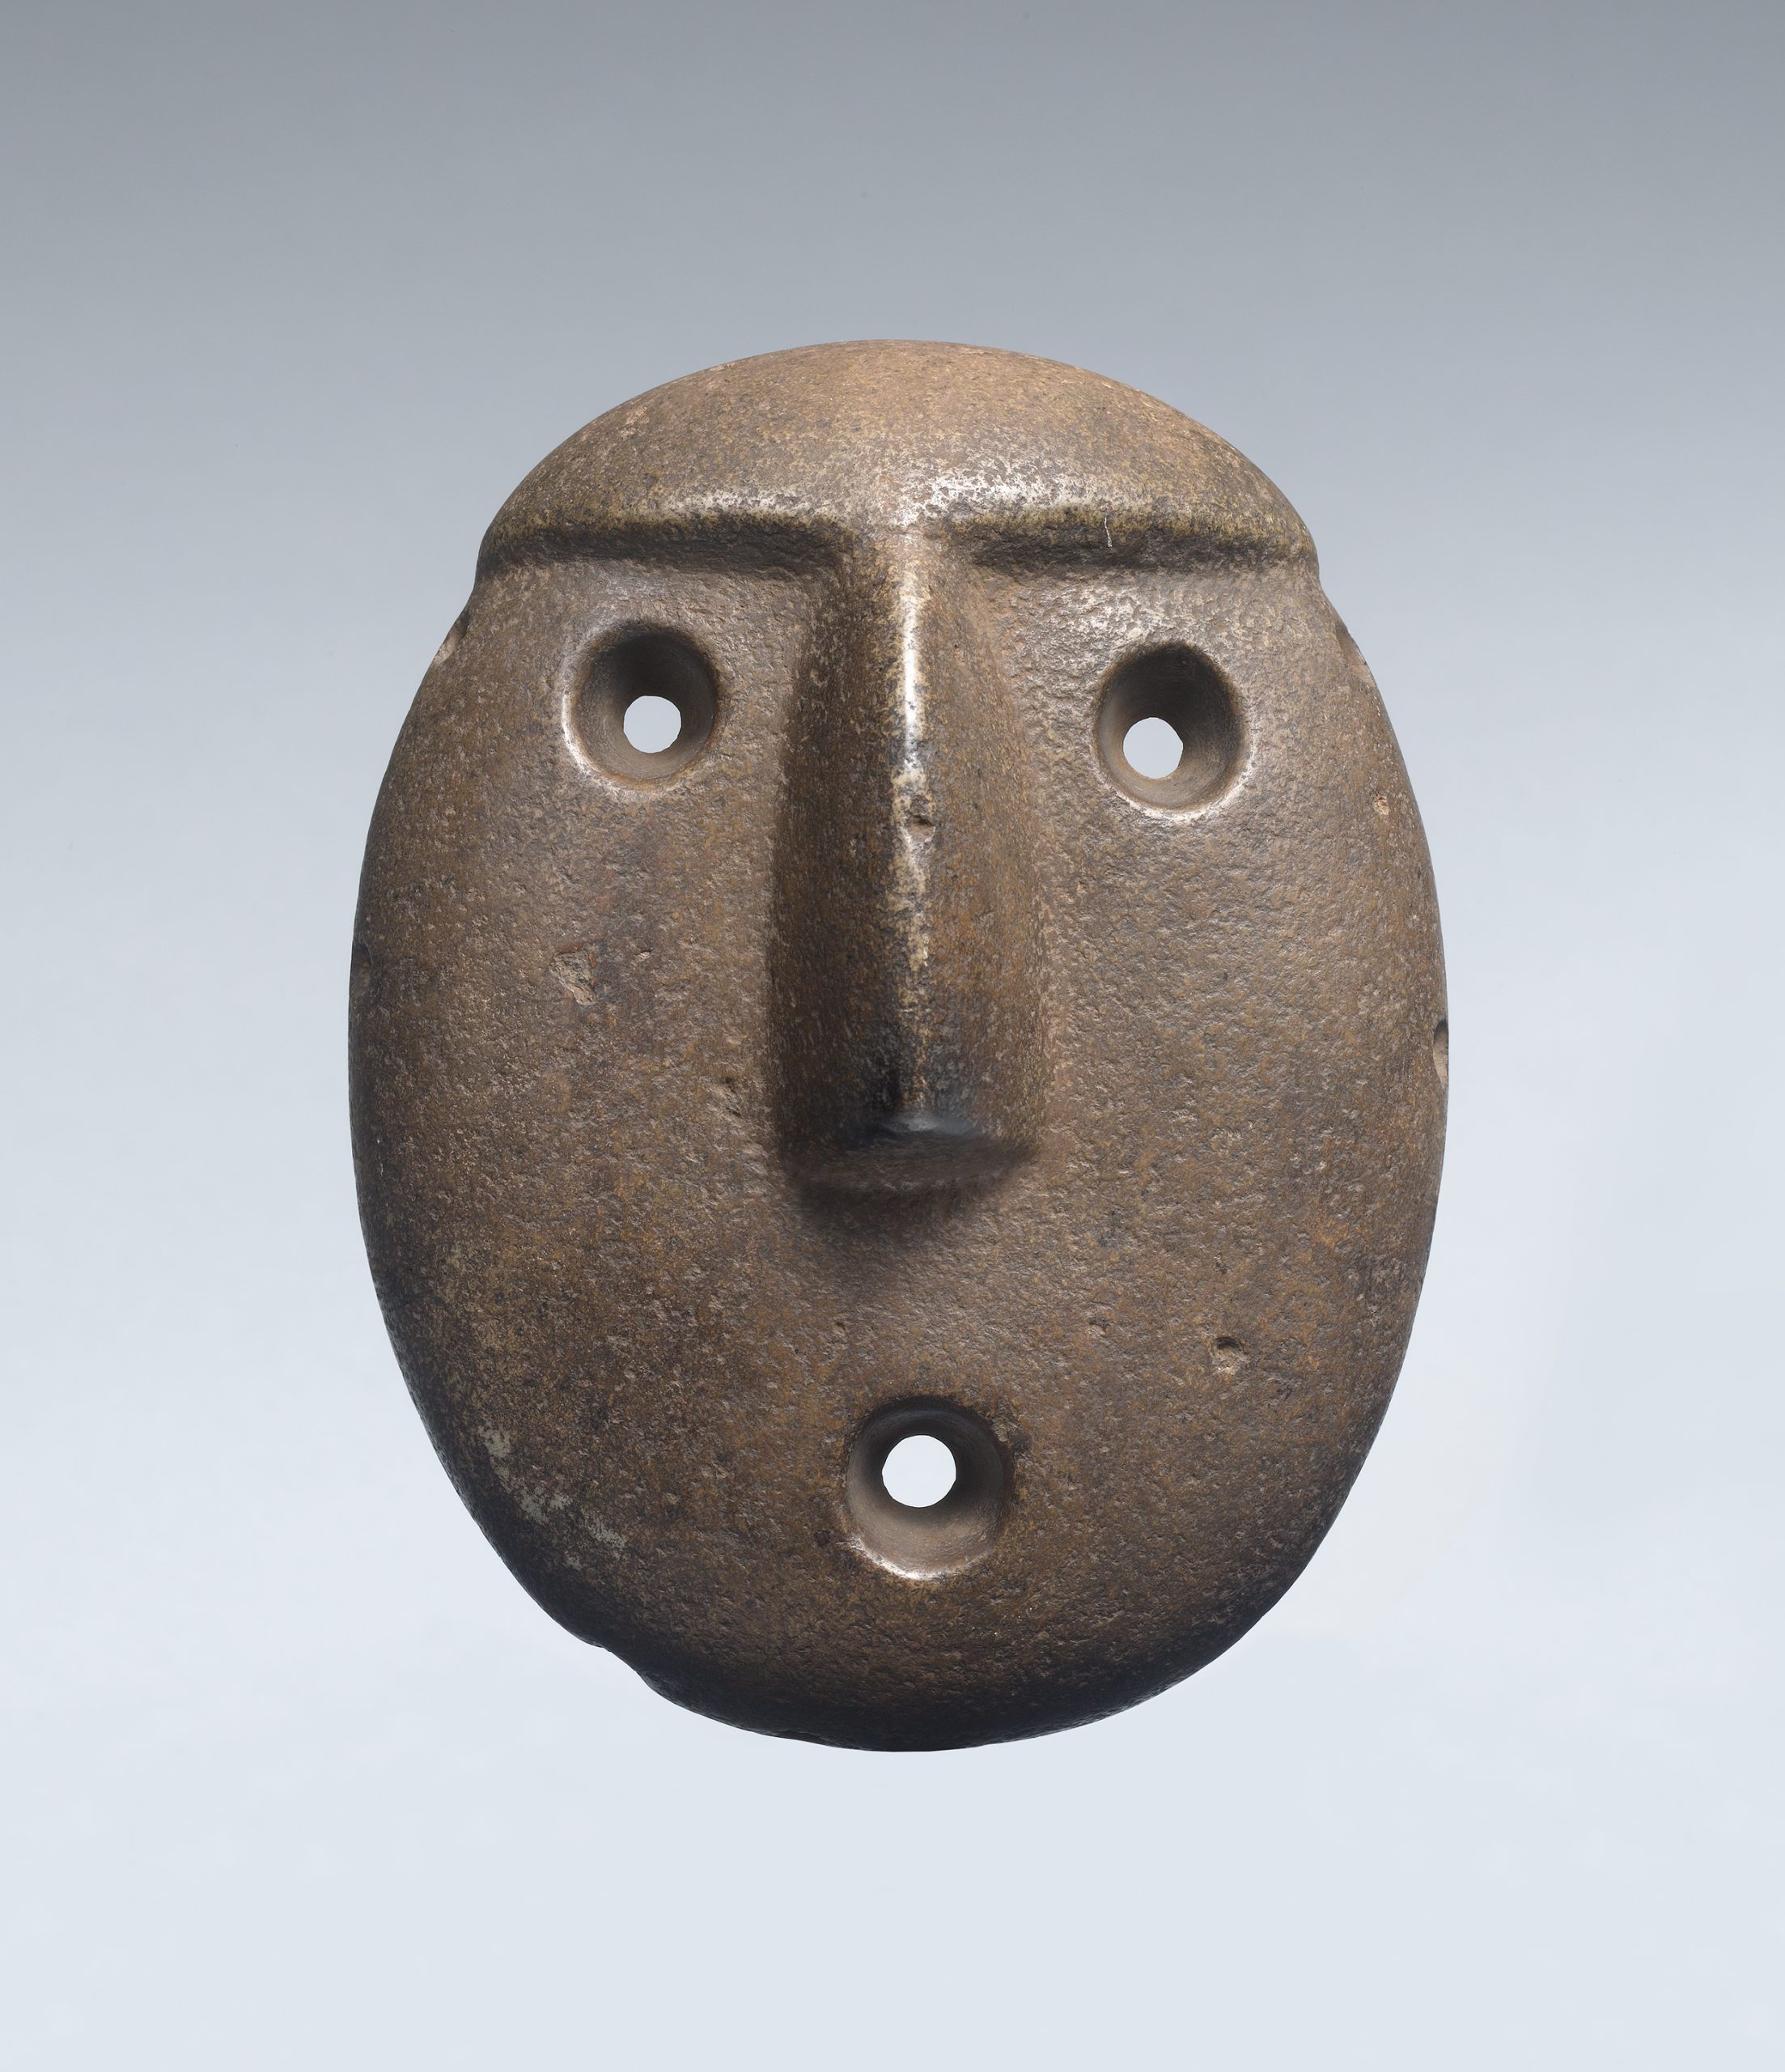 Face mask with large eyes, a prominent nose, open mouth, ear spools, and extended tongue.